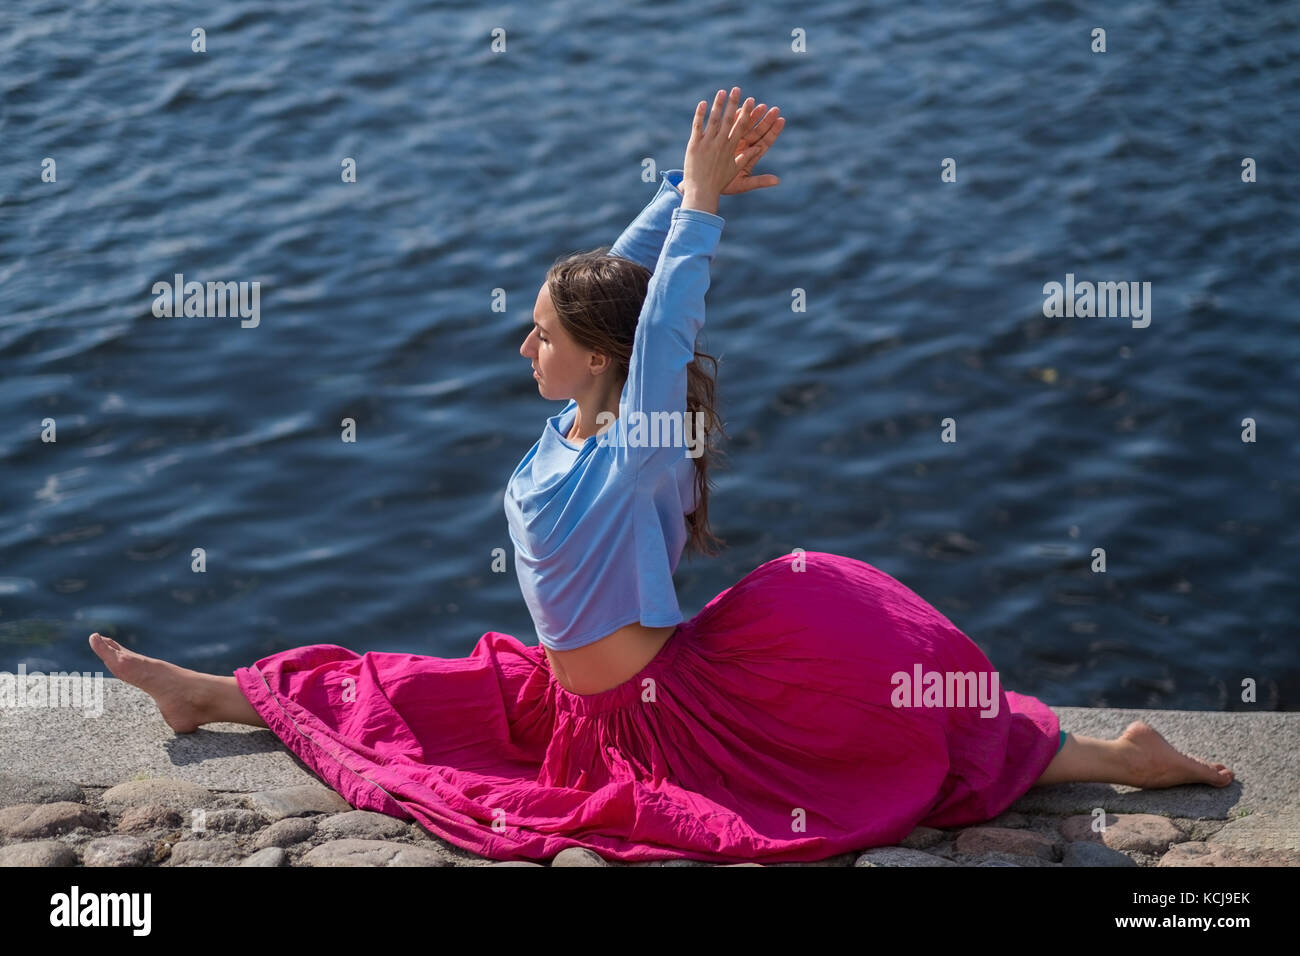 Sporty fit caucasian woman doing asana hanumanasana pose posture in nature. - Stock Image